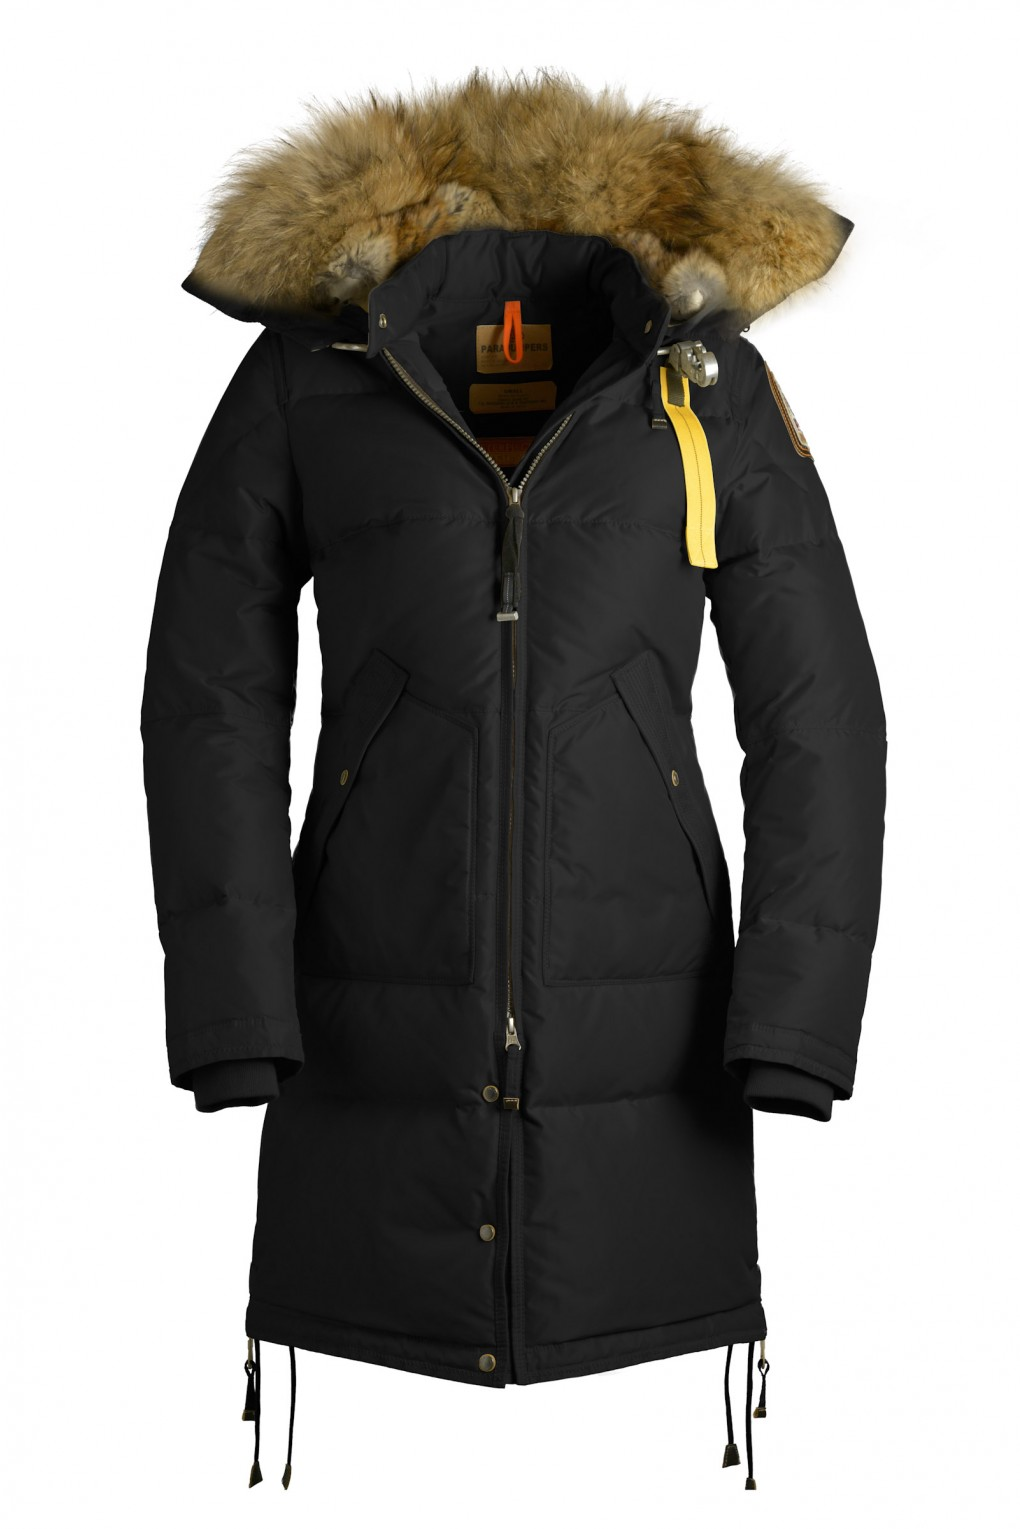 parajumpers LONG BEAR woman outerwear Black